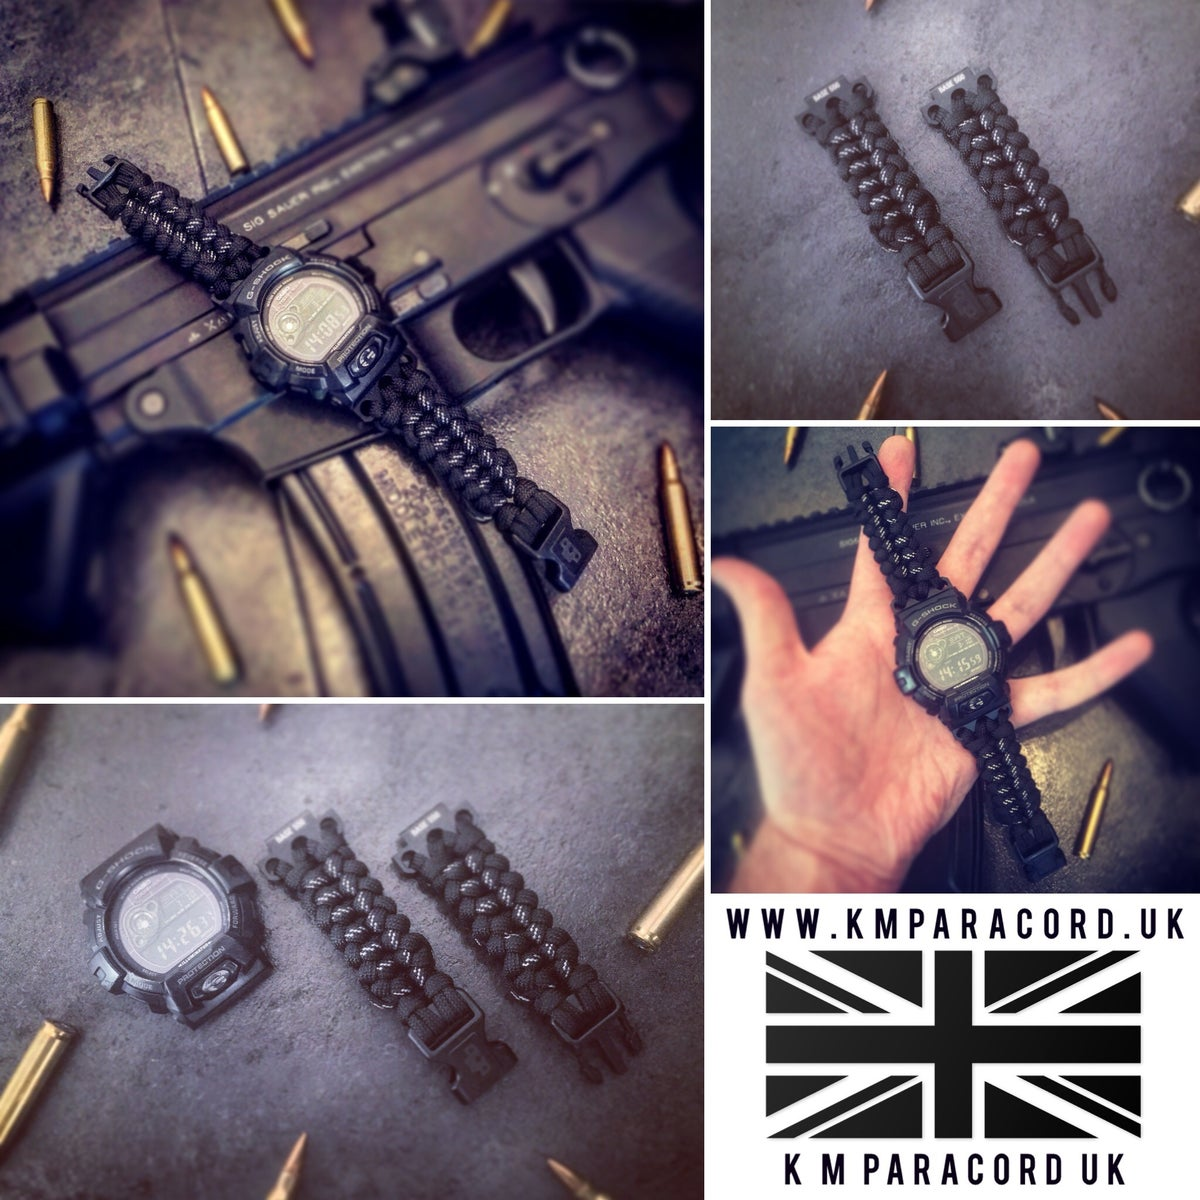 Image of KMP G-STRAP - Custom Straps for your G-SHOCK watch